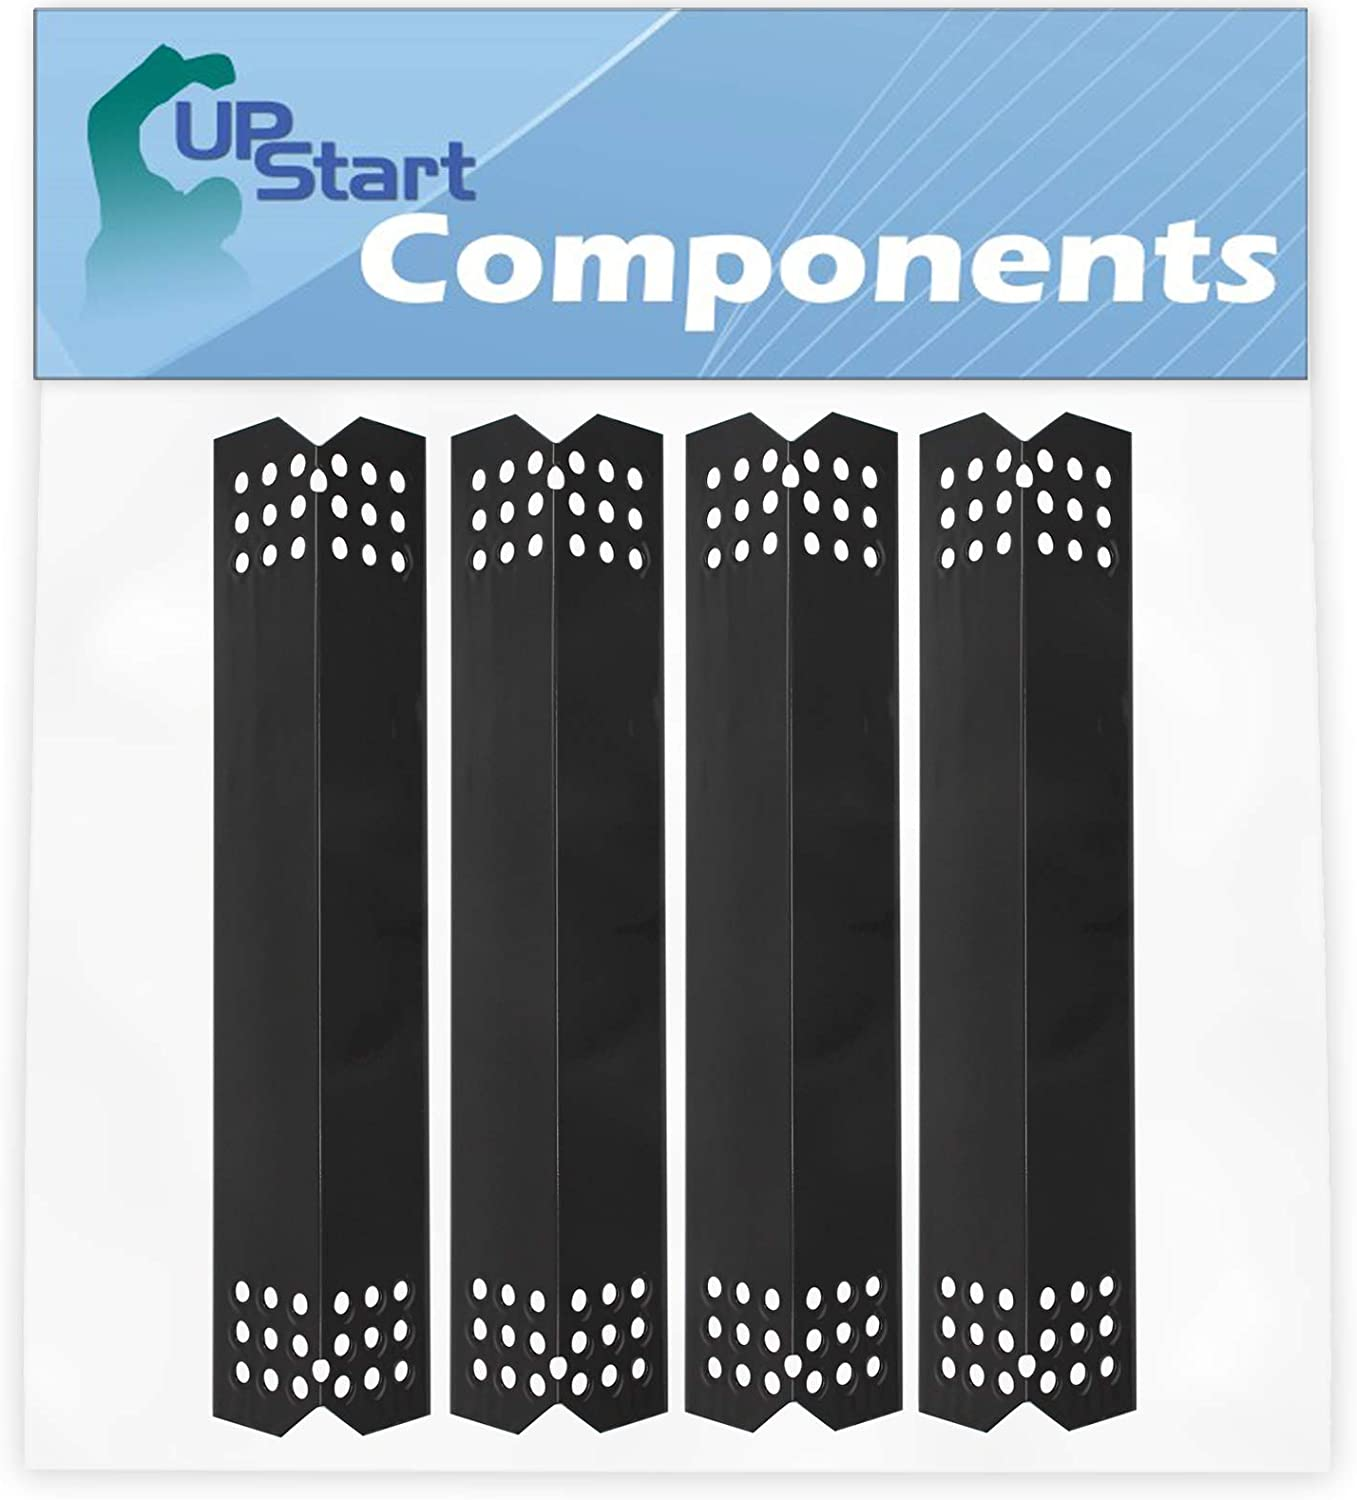 4-Pack BBQ Grill Heat Shield Plate Tent Replacement Parts for Kenmore 122.33492410 - Compatible Barbeque Porcelain Steel Flame Tamer, Guard, Deflector, Flavorizer Bar, Vaporizer Bar, Burner Cover